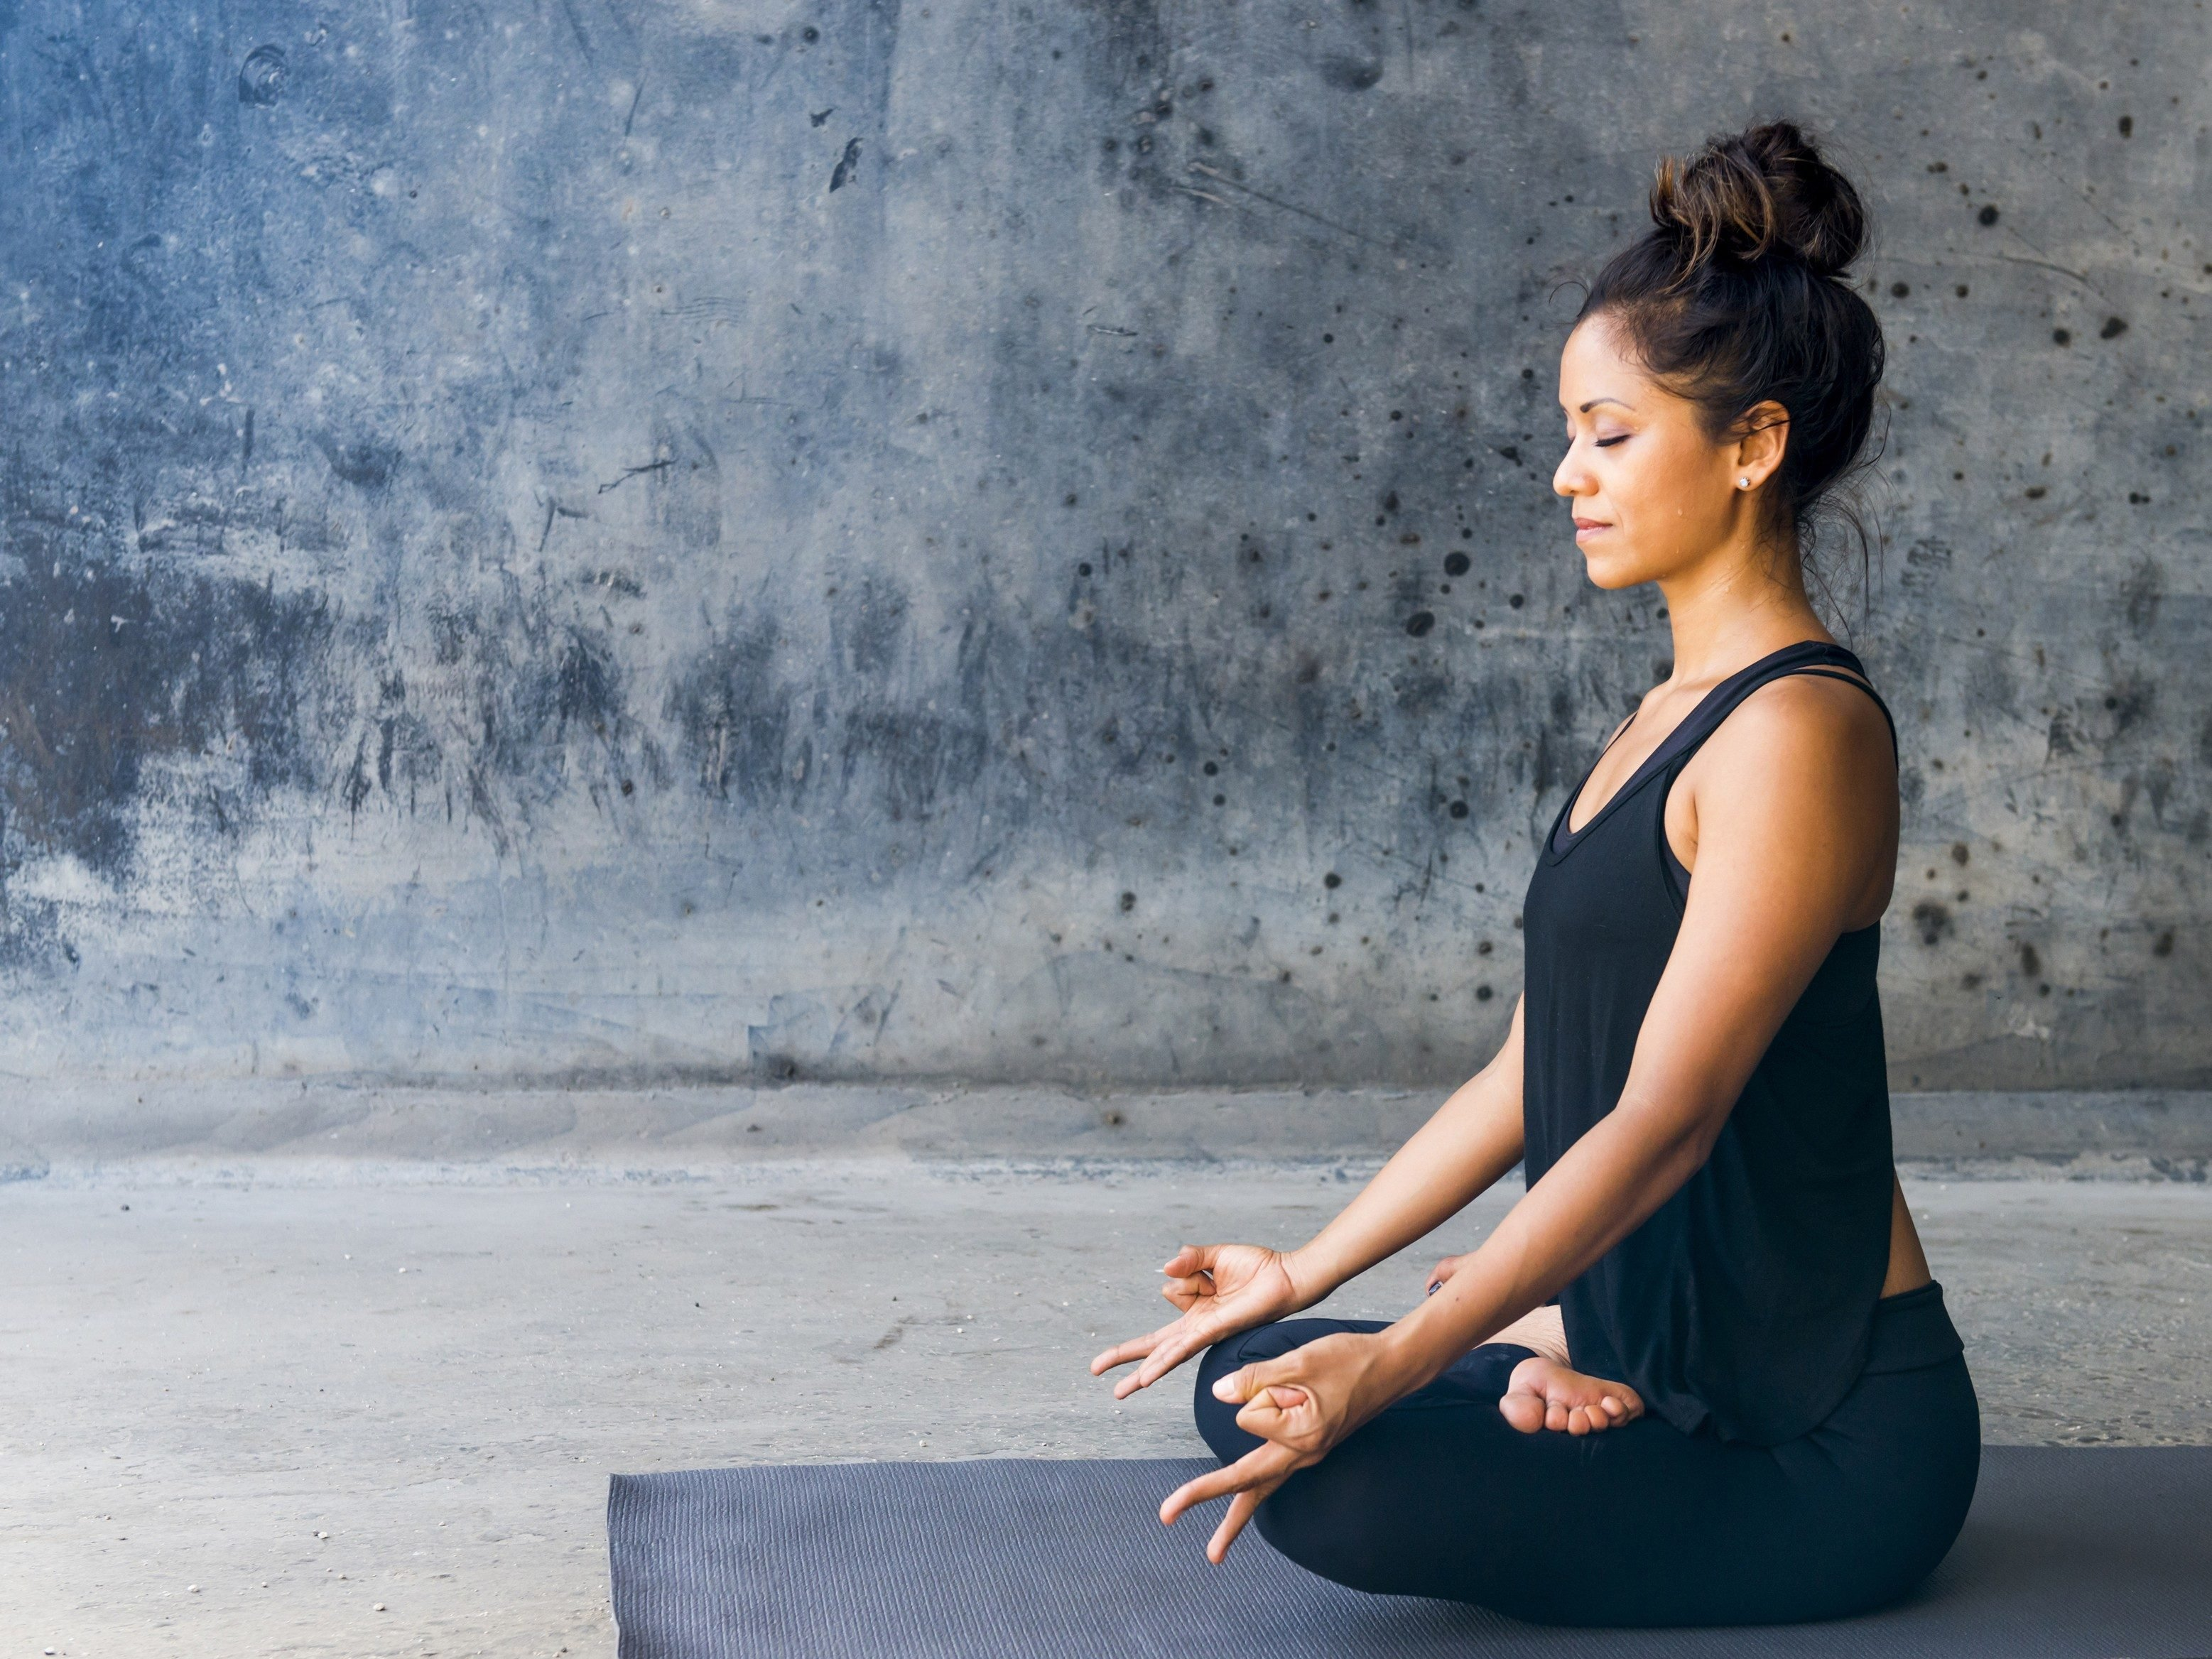 16. Meditation is a proven stress-buster.